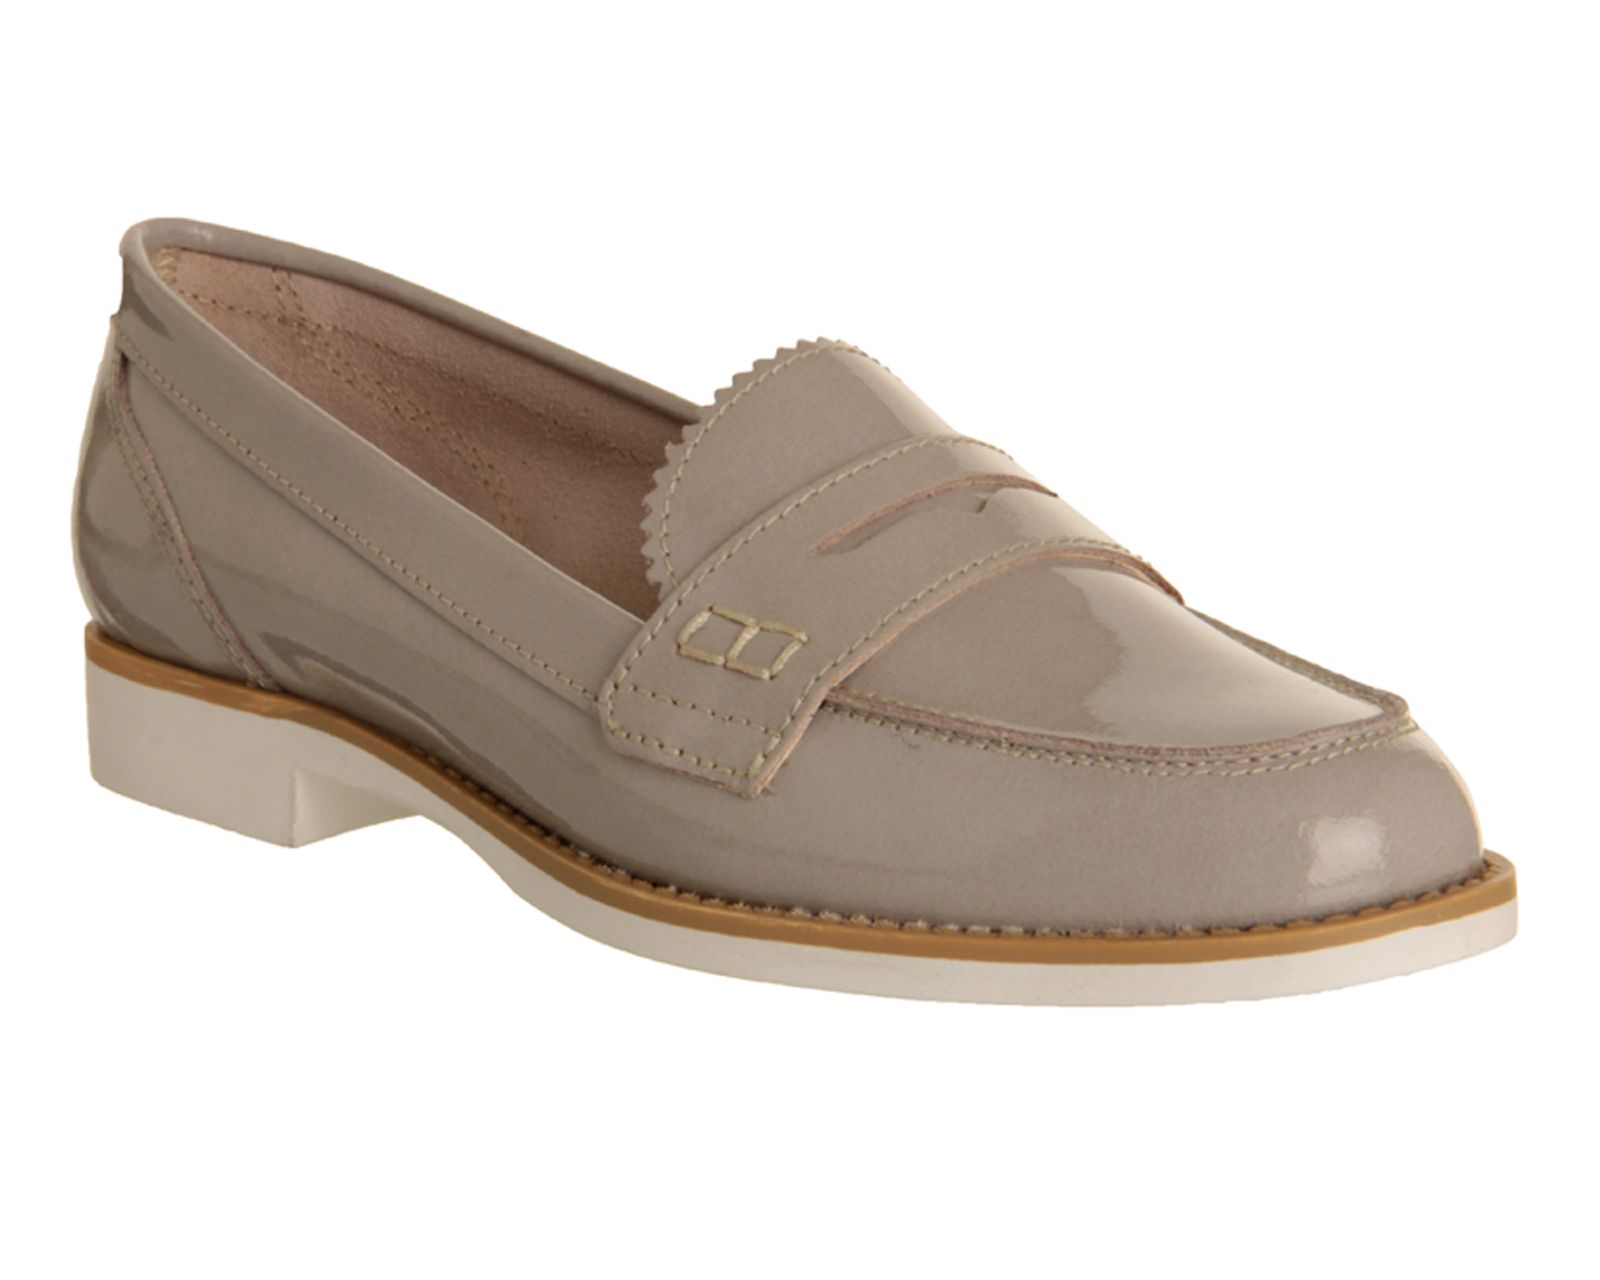 Kim almond toe flat loafer shoes